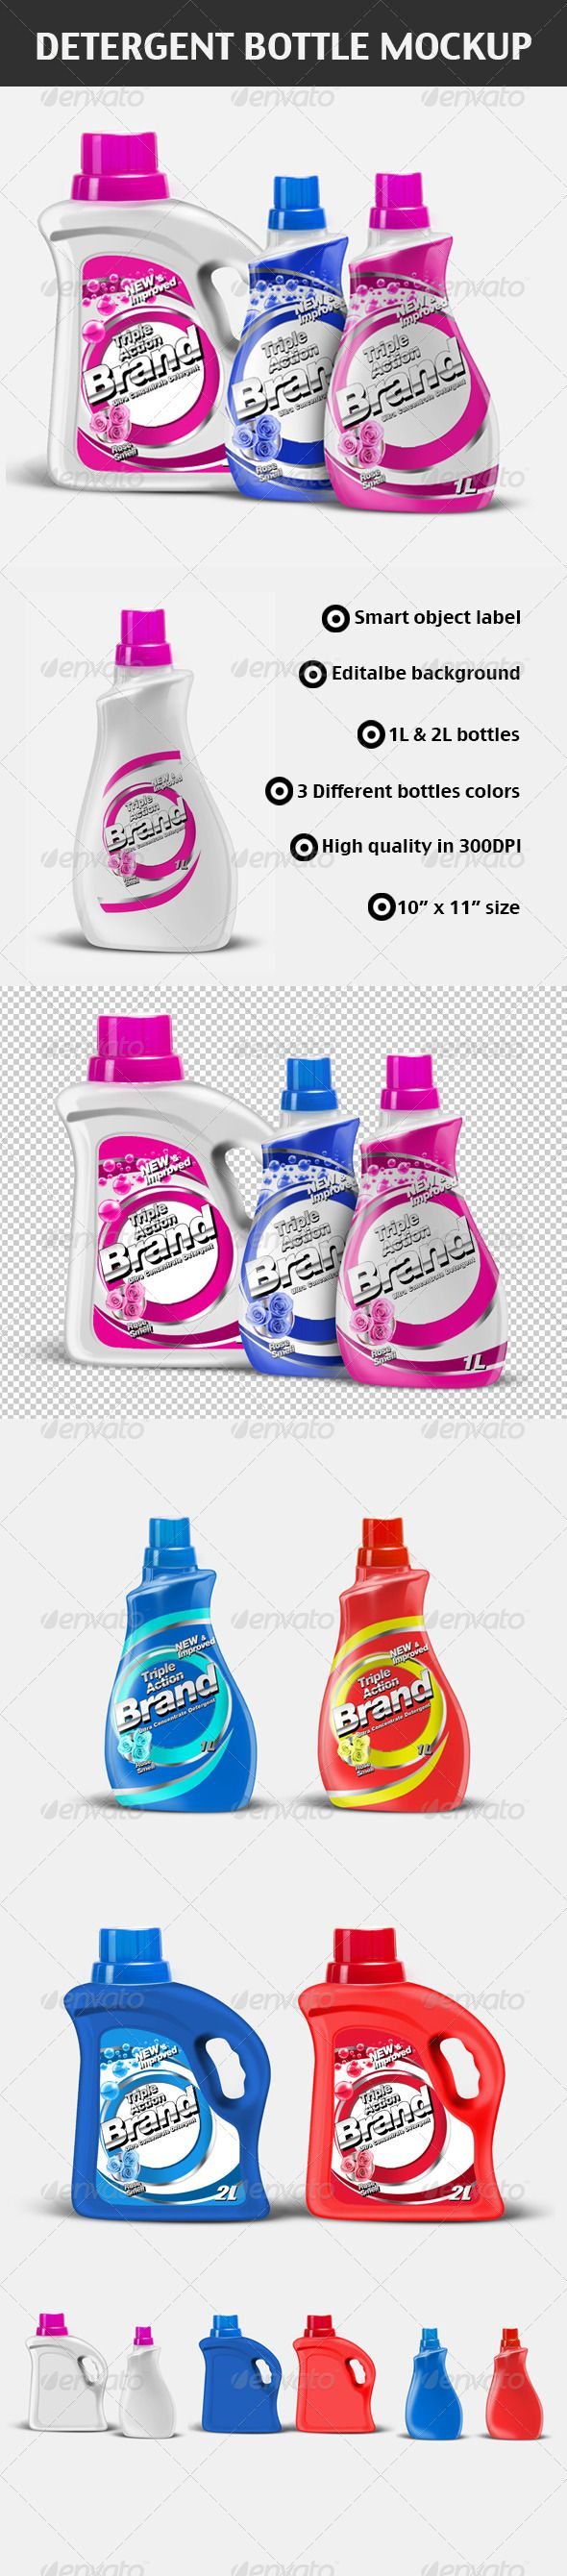 Detergent Bottles Mock-up Template PSD. Download here: http://graphicriver.net/item/detergent-bottles-mockup/3280384?s_rank=1782&ref=yinkira